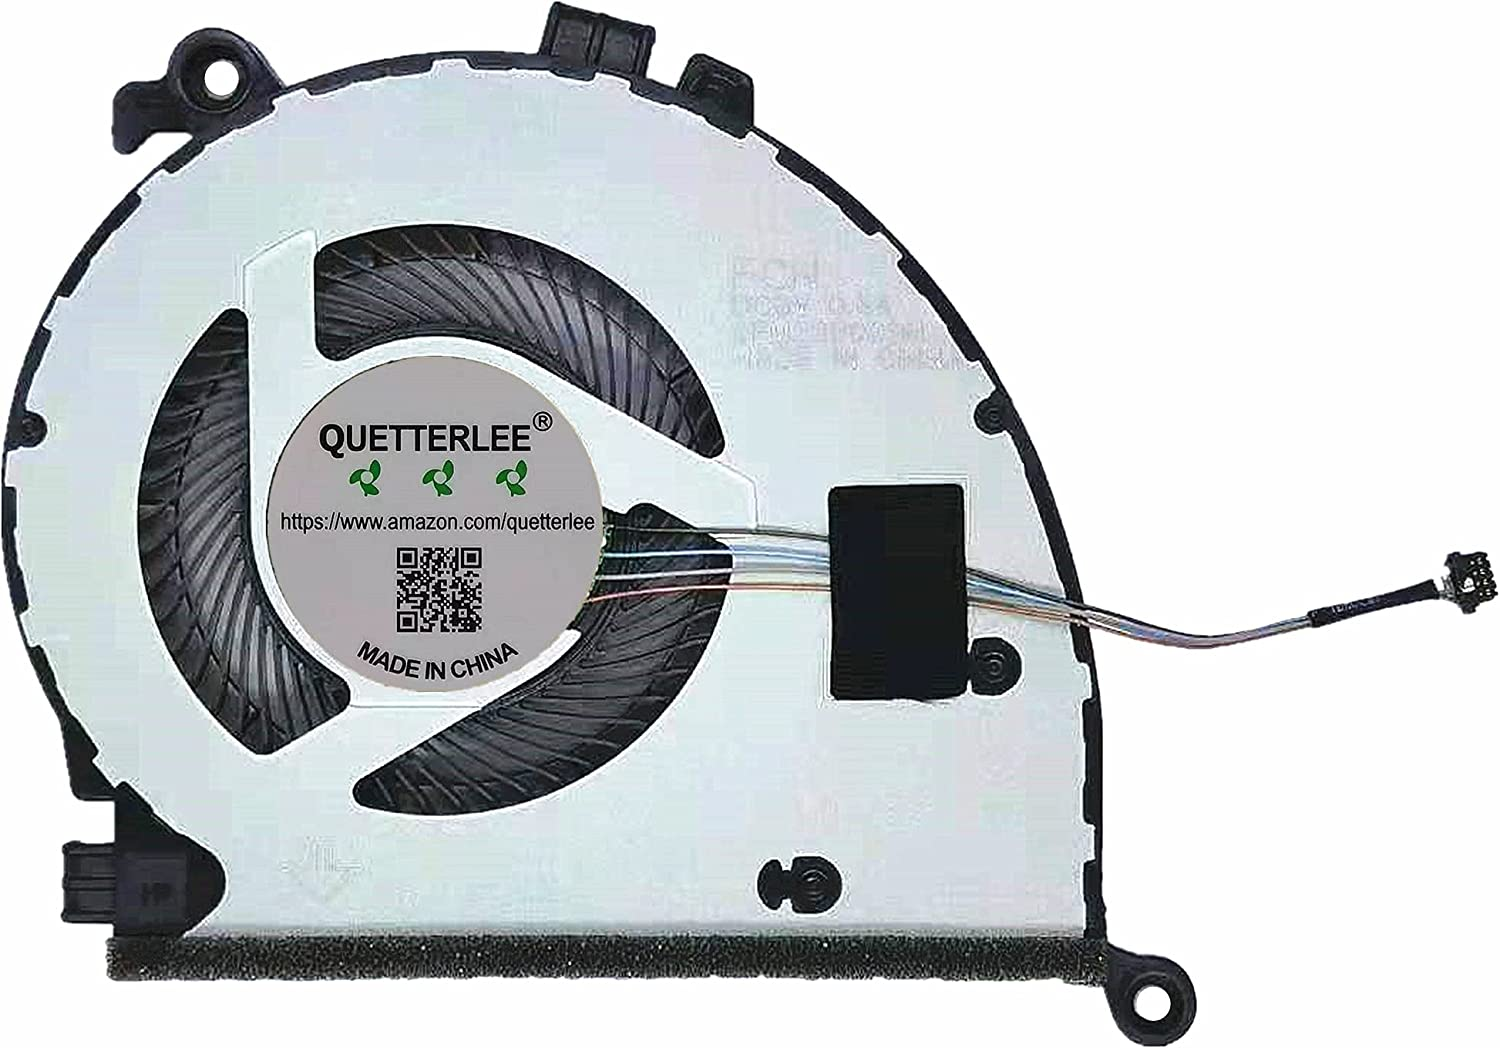 QUETTERLEE Replacement New Laptop CPU 202 Popular overseas Lenovo Fan Cooling for Ranking TOP9